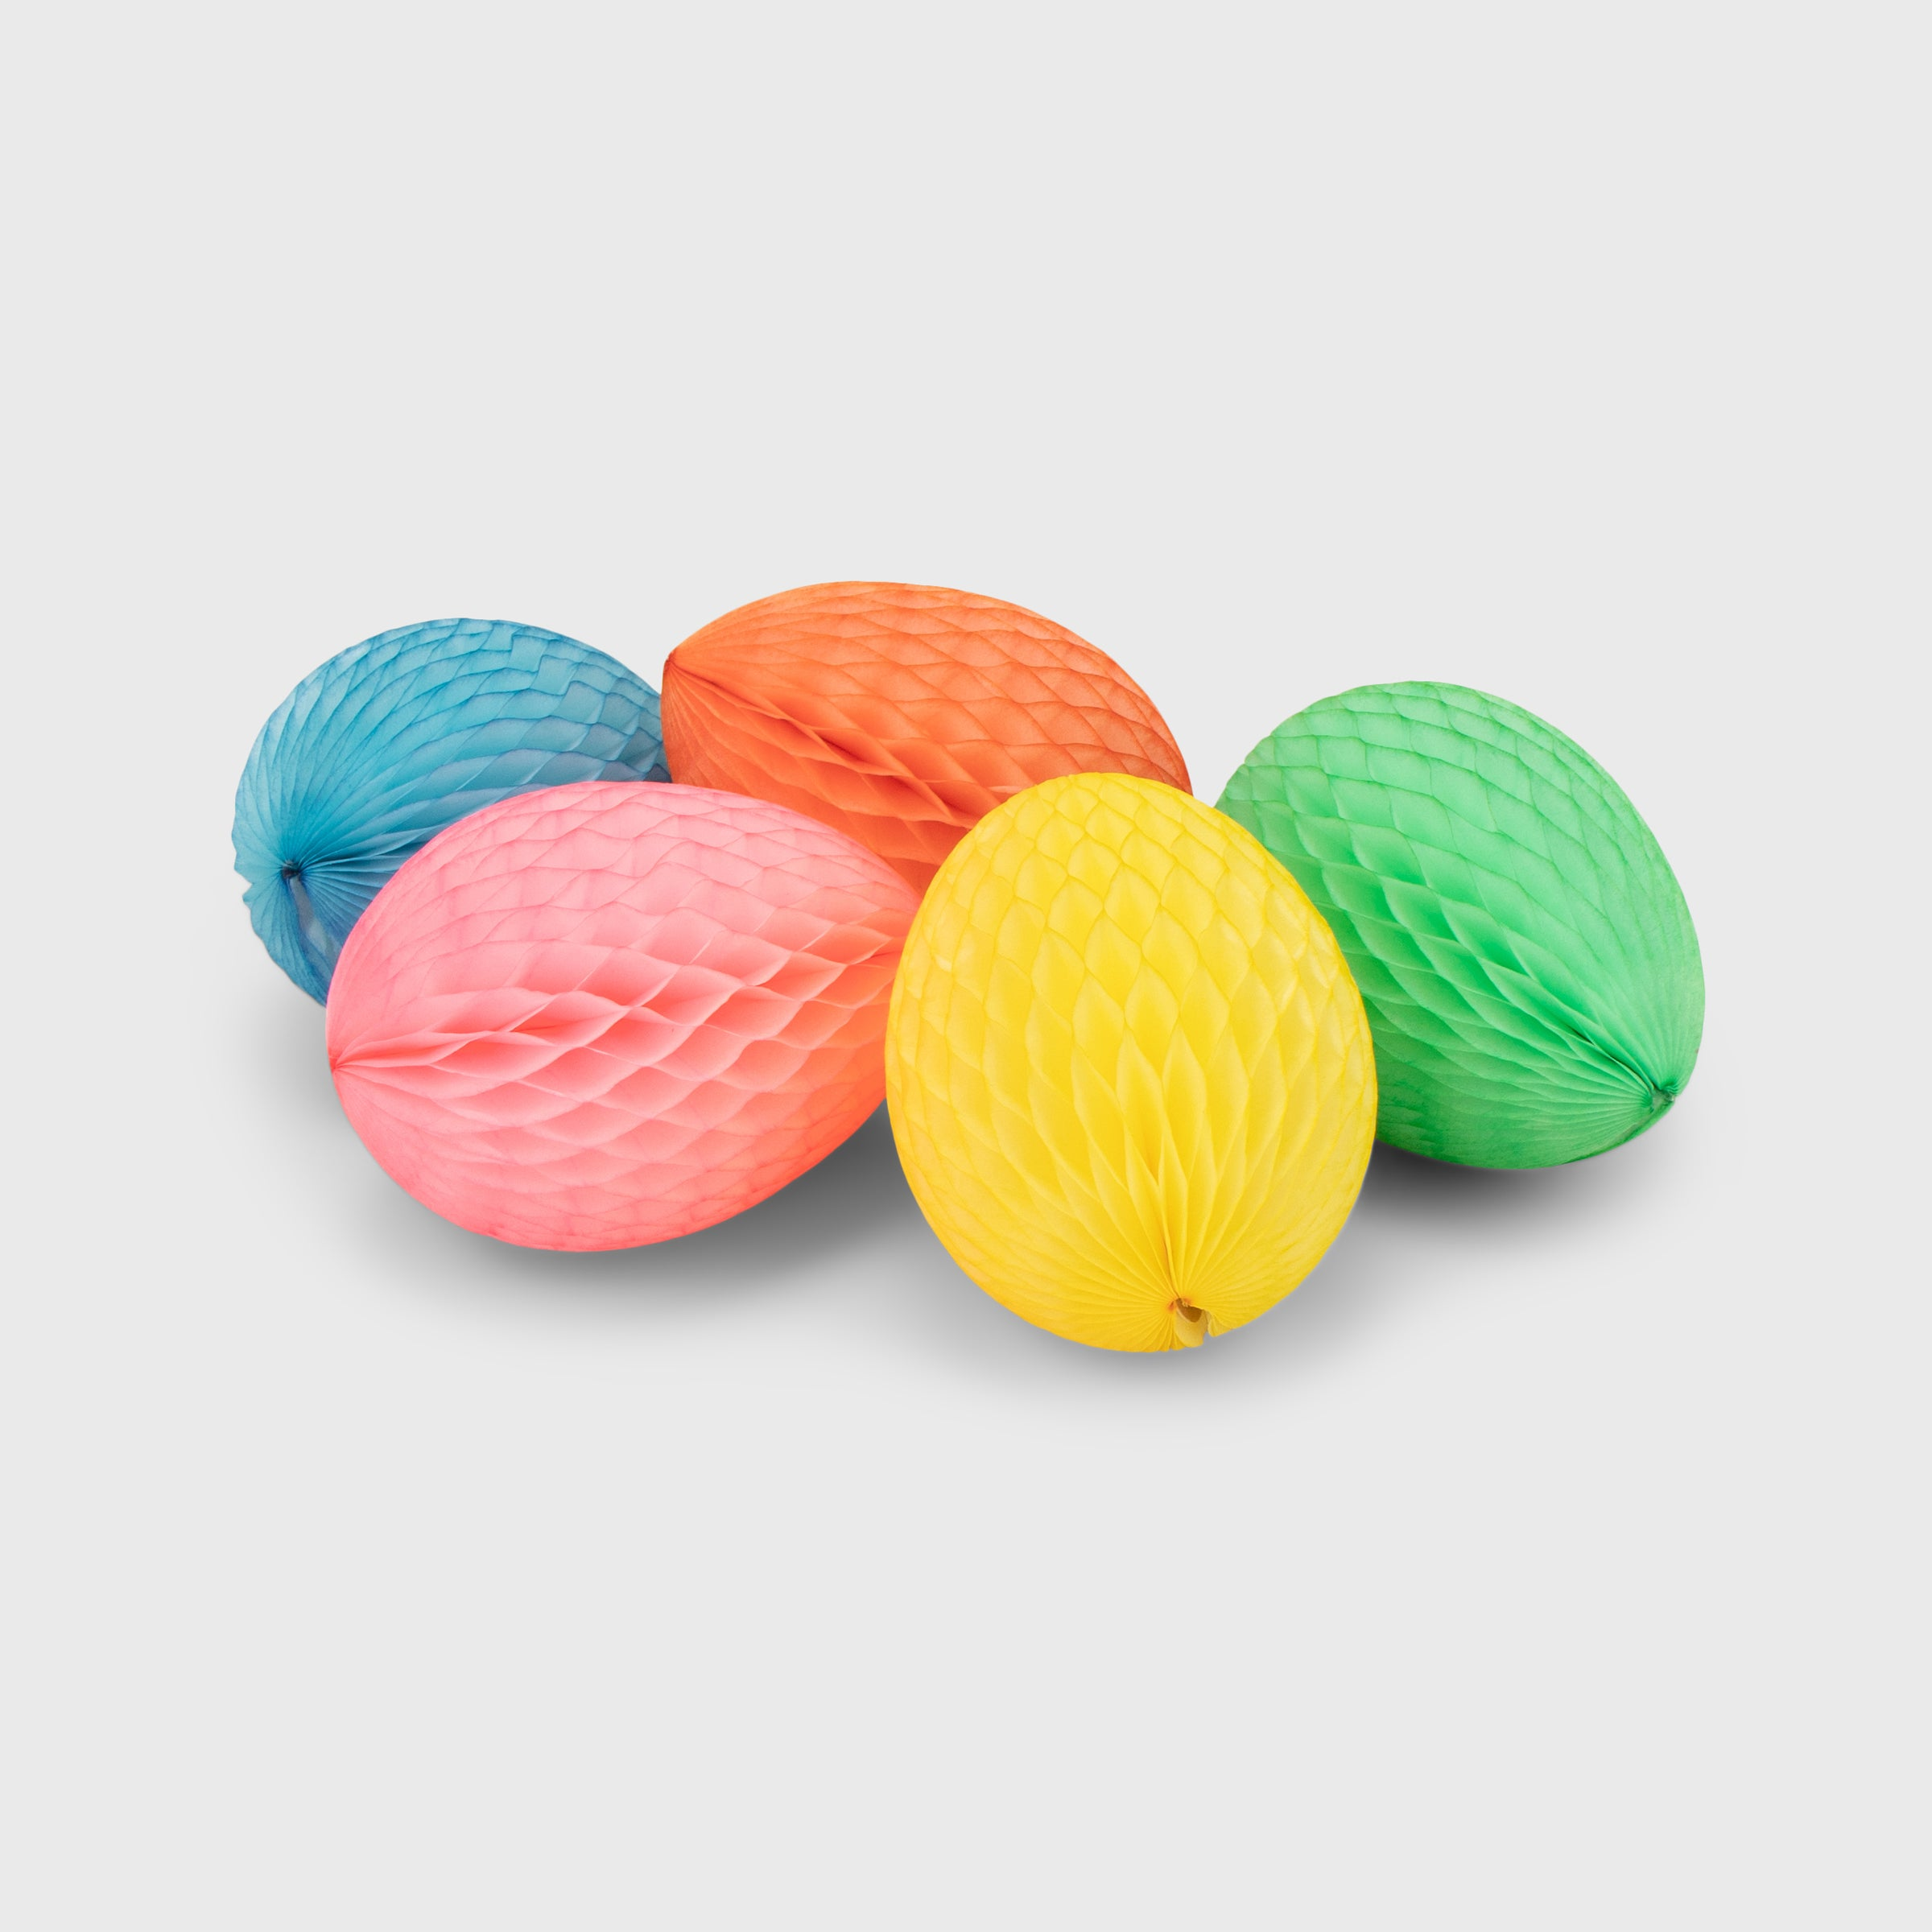 Honeycomb Eggs 8cm Pack of 5, Pastel